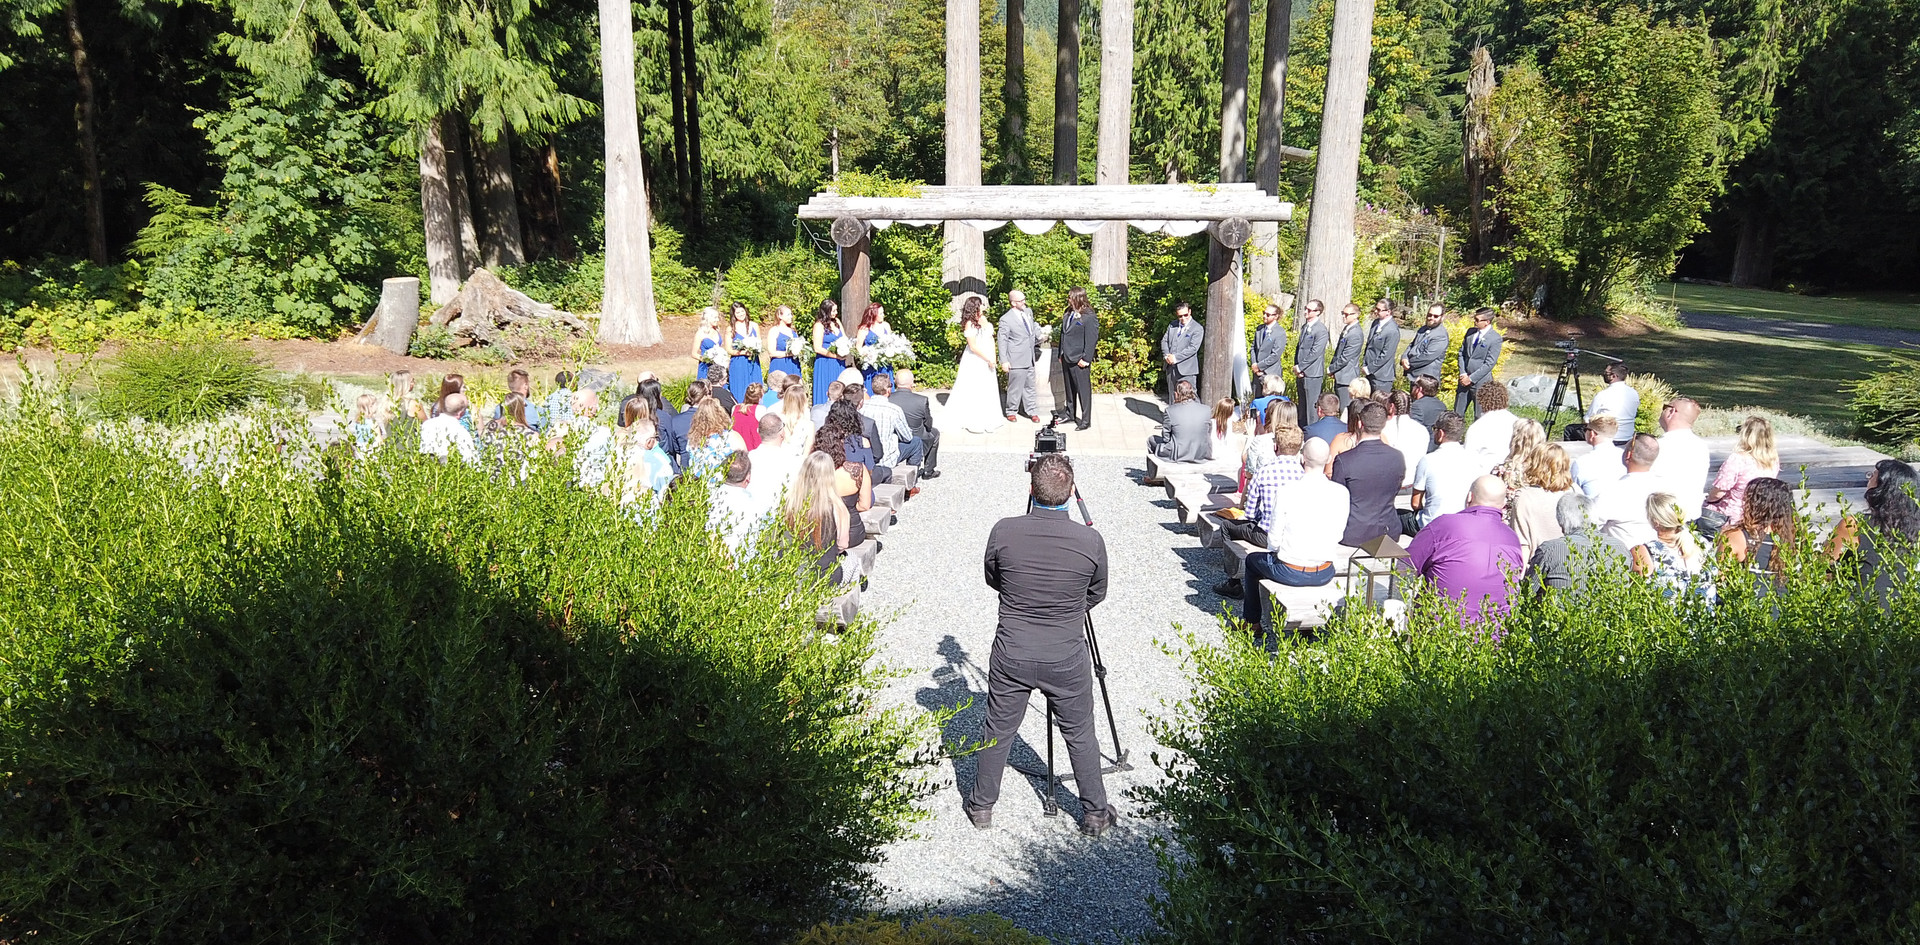 Outdoor Ceremony (Sound Provided)